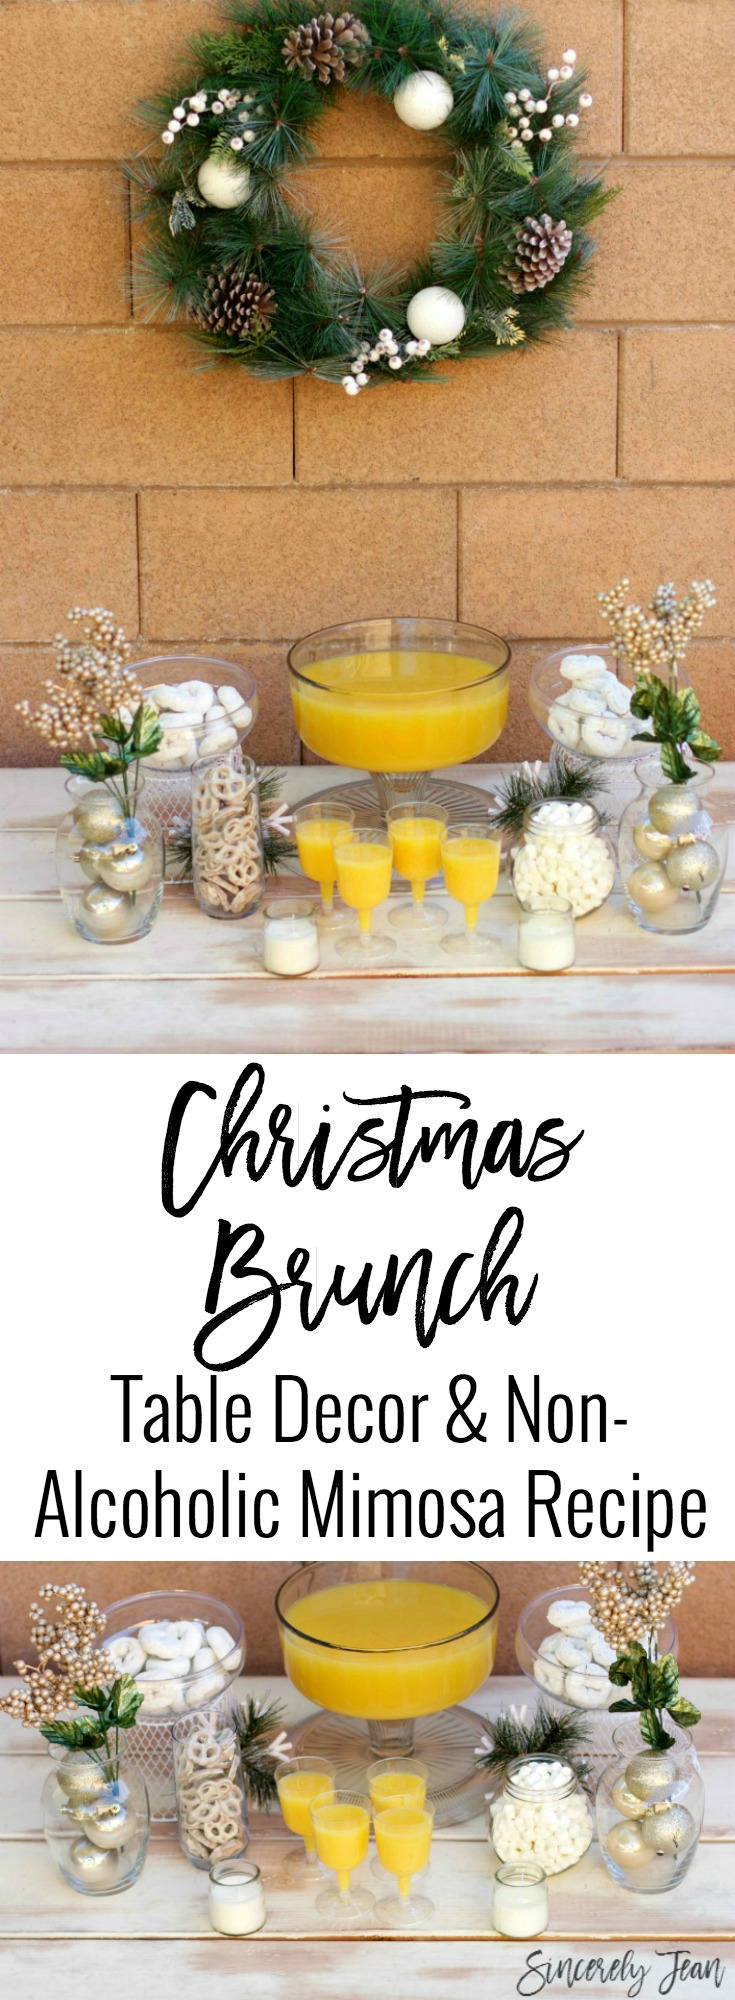 SincerelyJean.com - Check out our Christmas Brunch table decor and mimosa (virgin) recipe